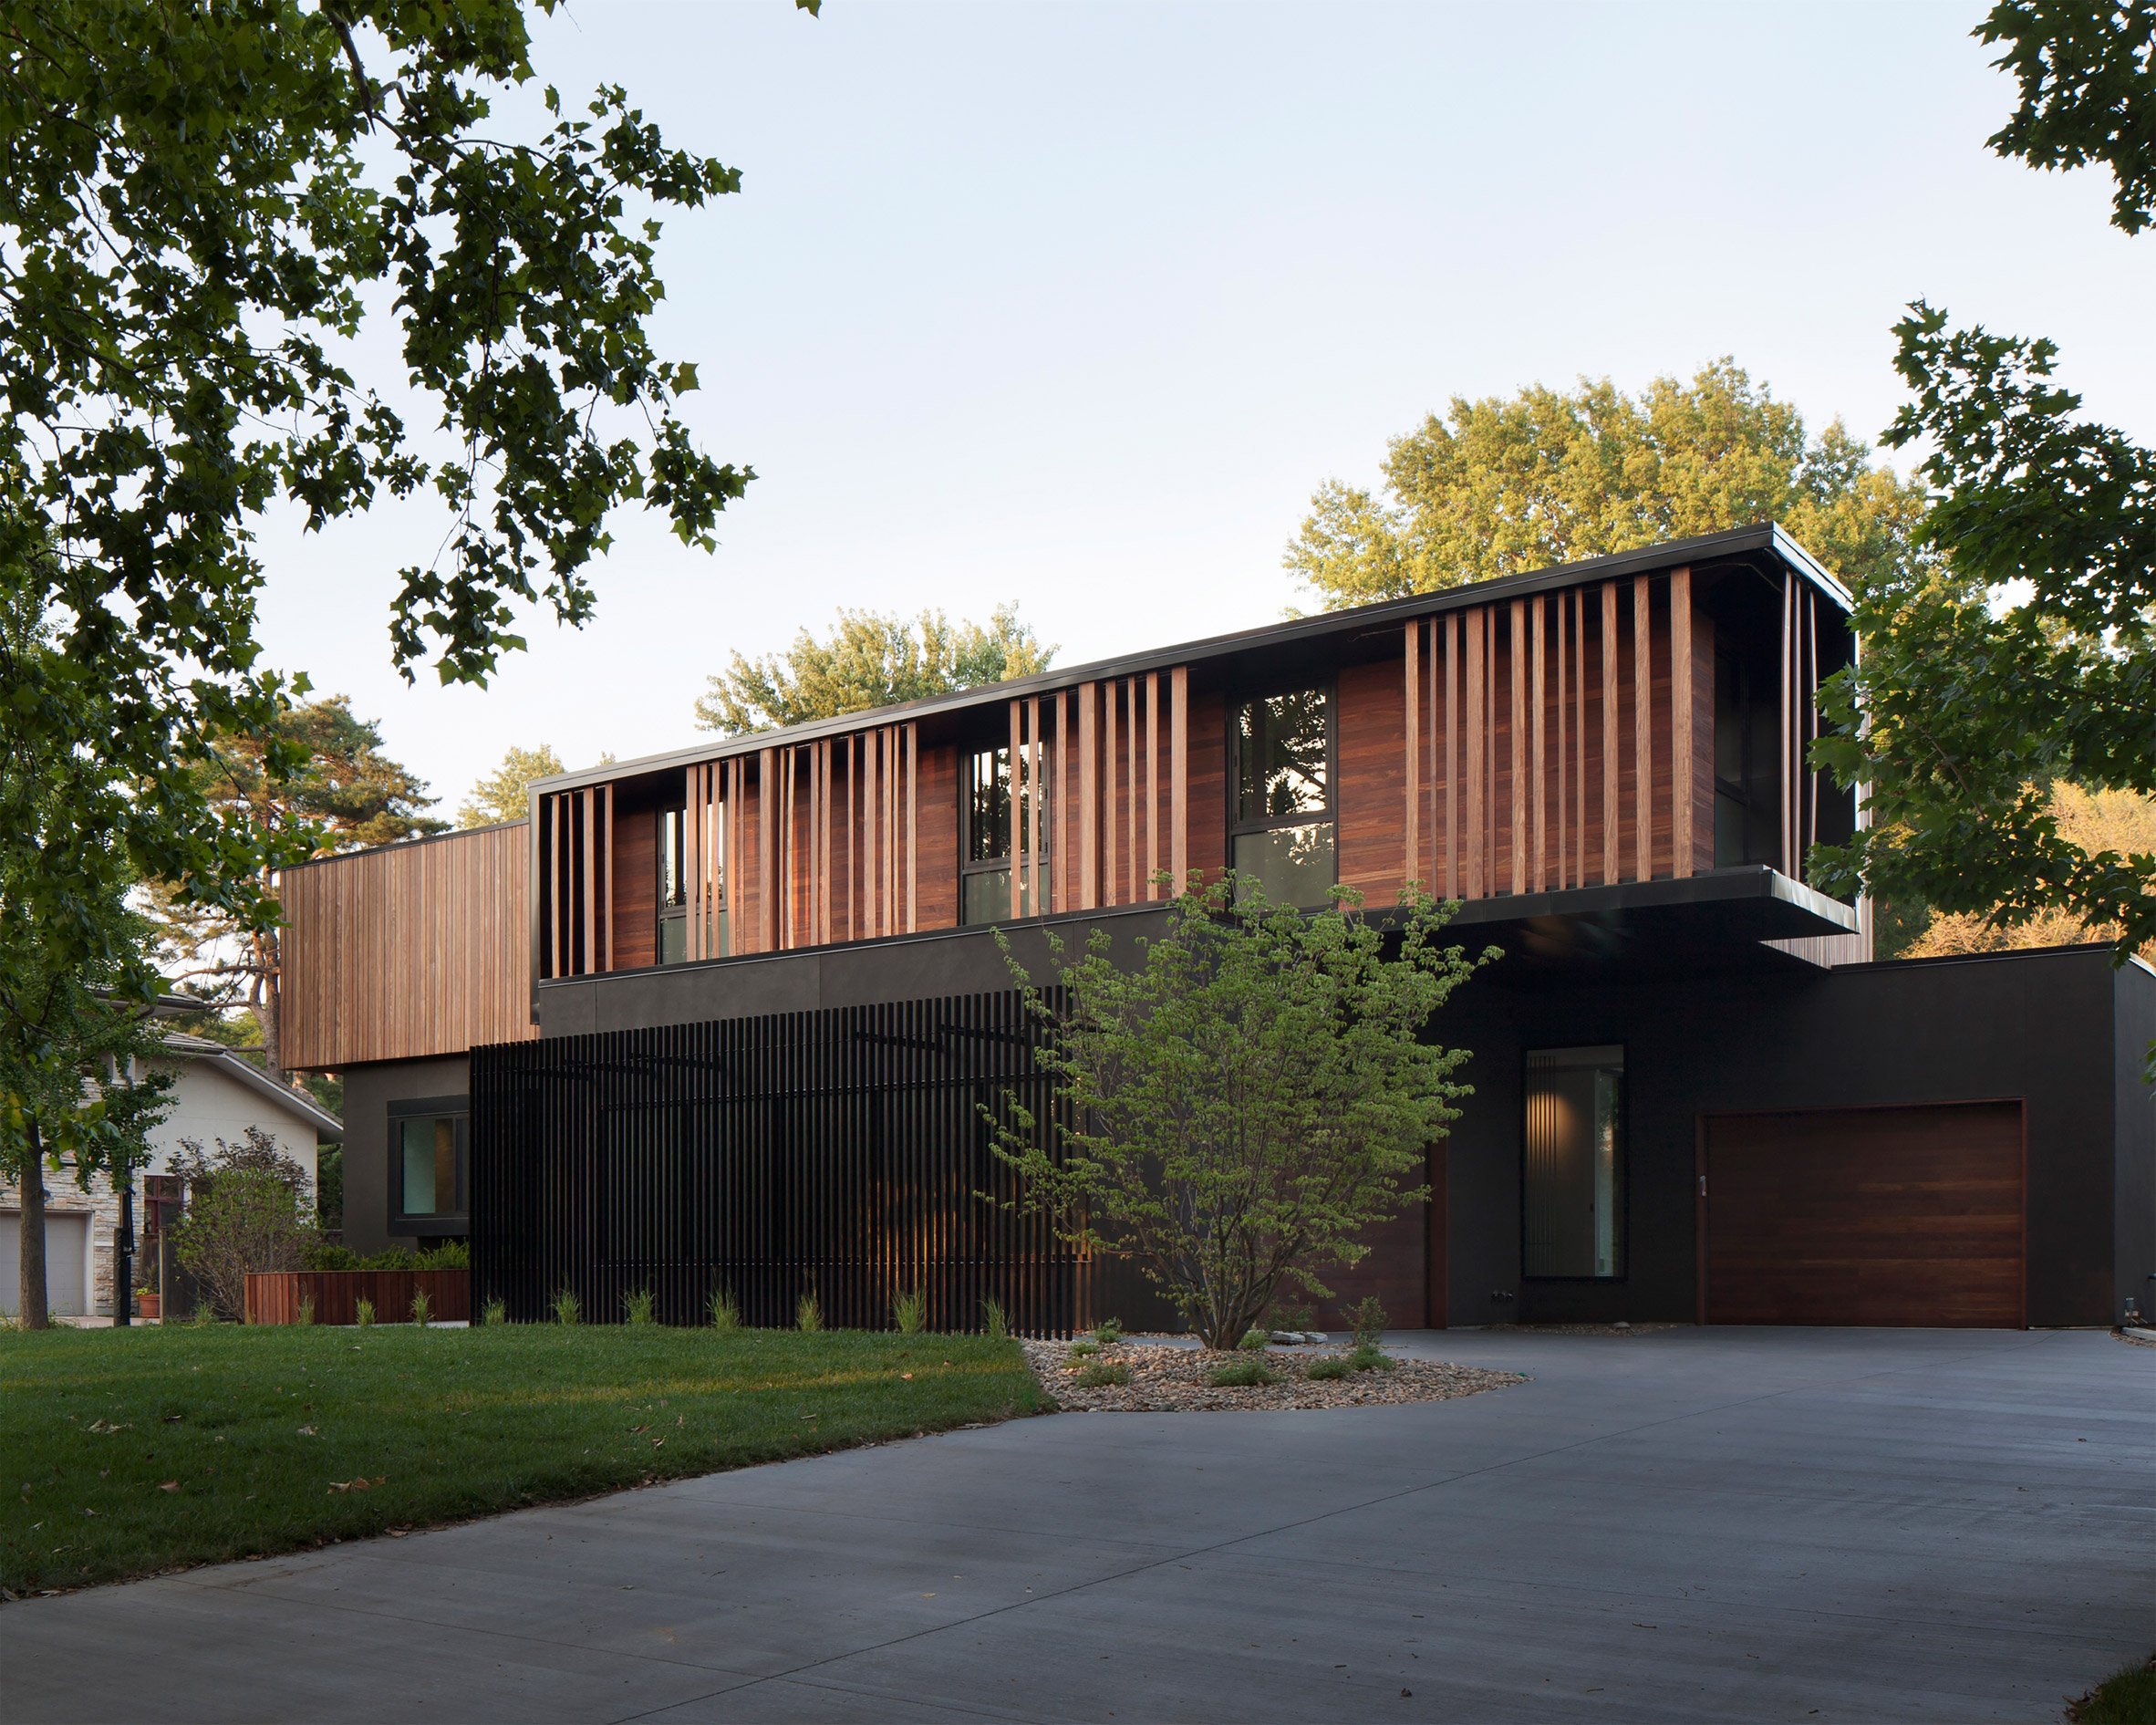 Hufft Architects' Kansas City residence is influenced by Marcel Breuer